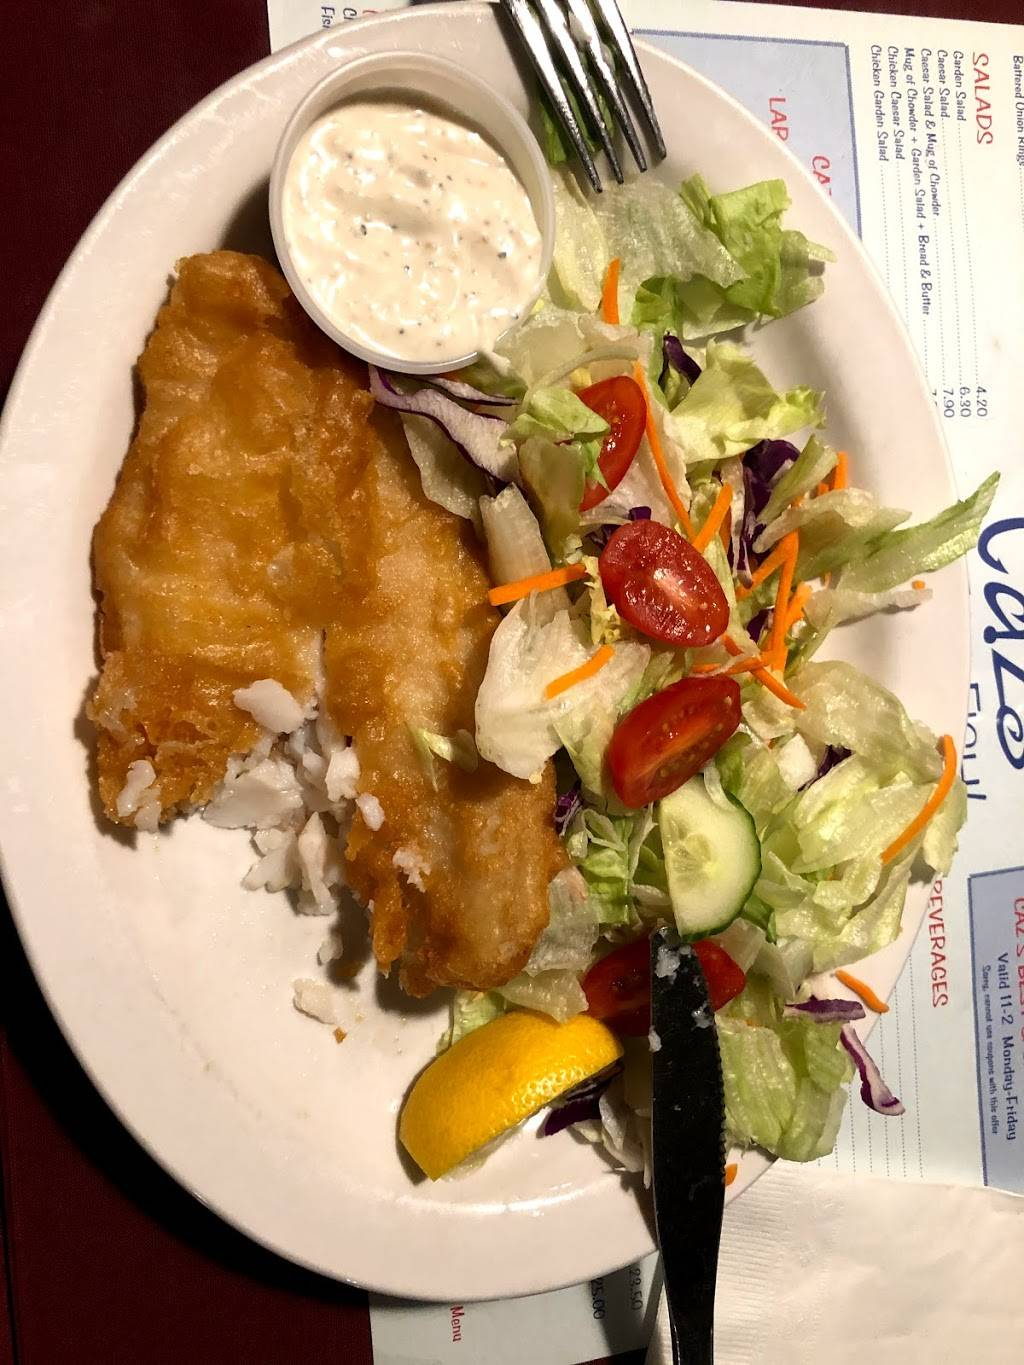 Cazs Great Fish Cambridge | meal delivery | 10 Pinebush Rd, Cambridge, ON N1R 5S4, Canada | 5196216081 OR +1 519-621-6081